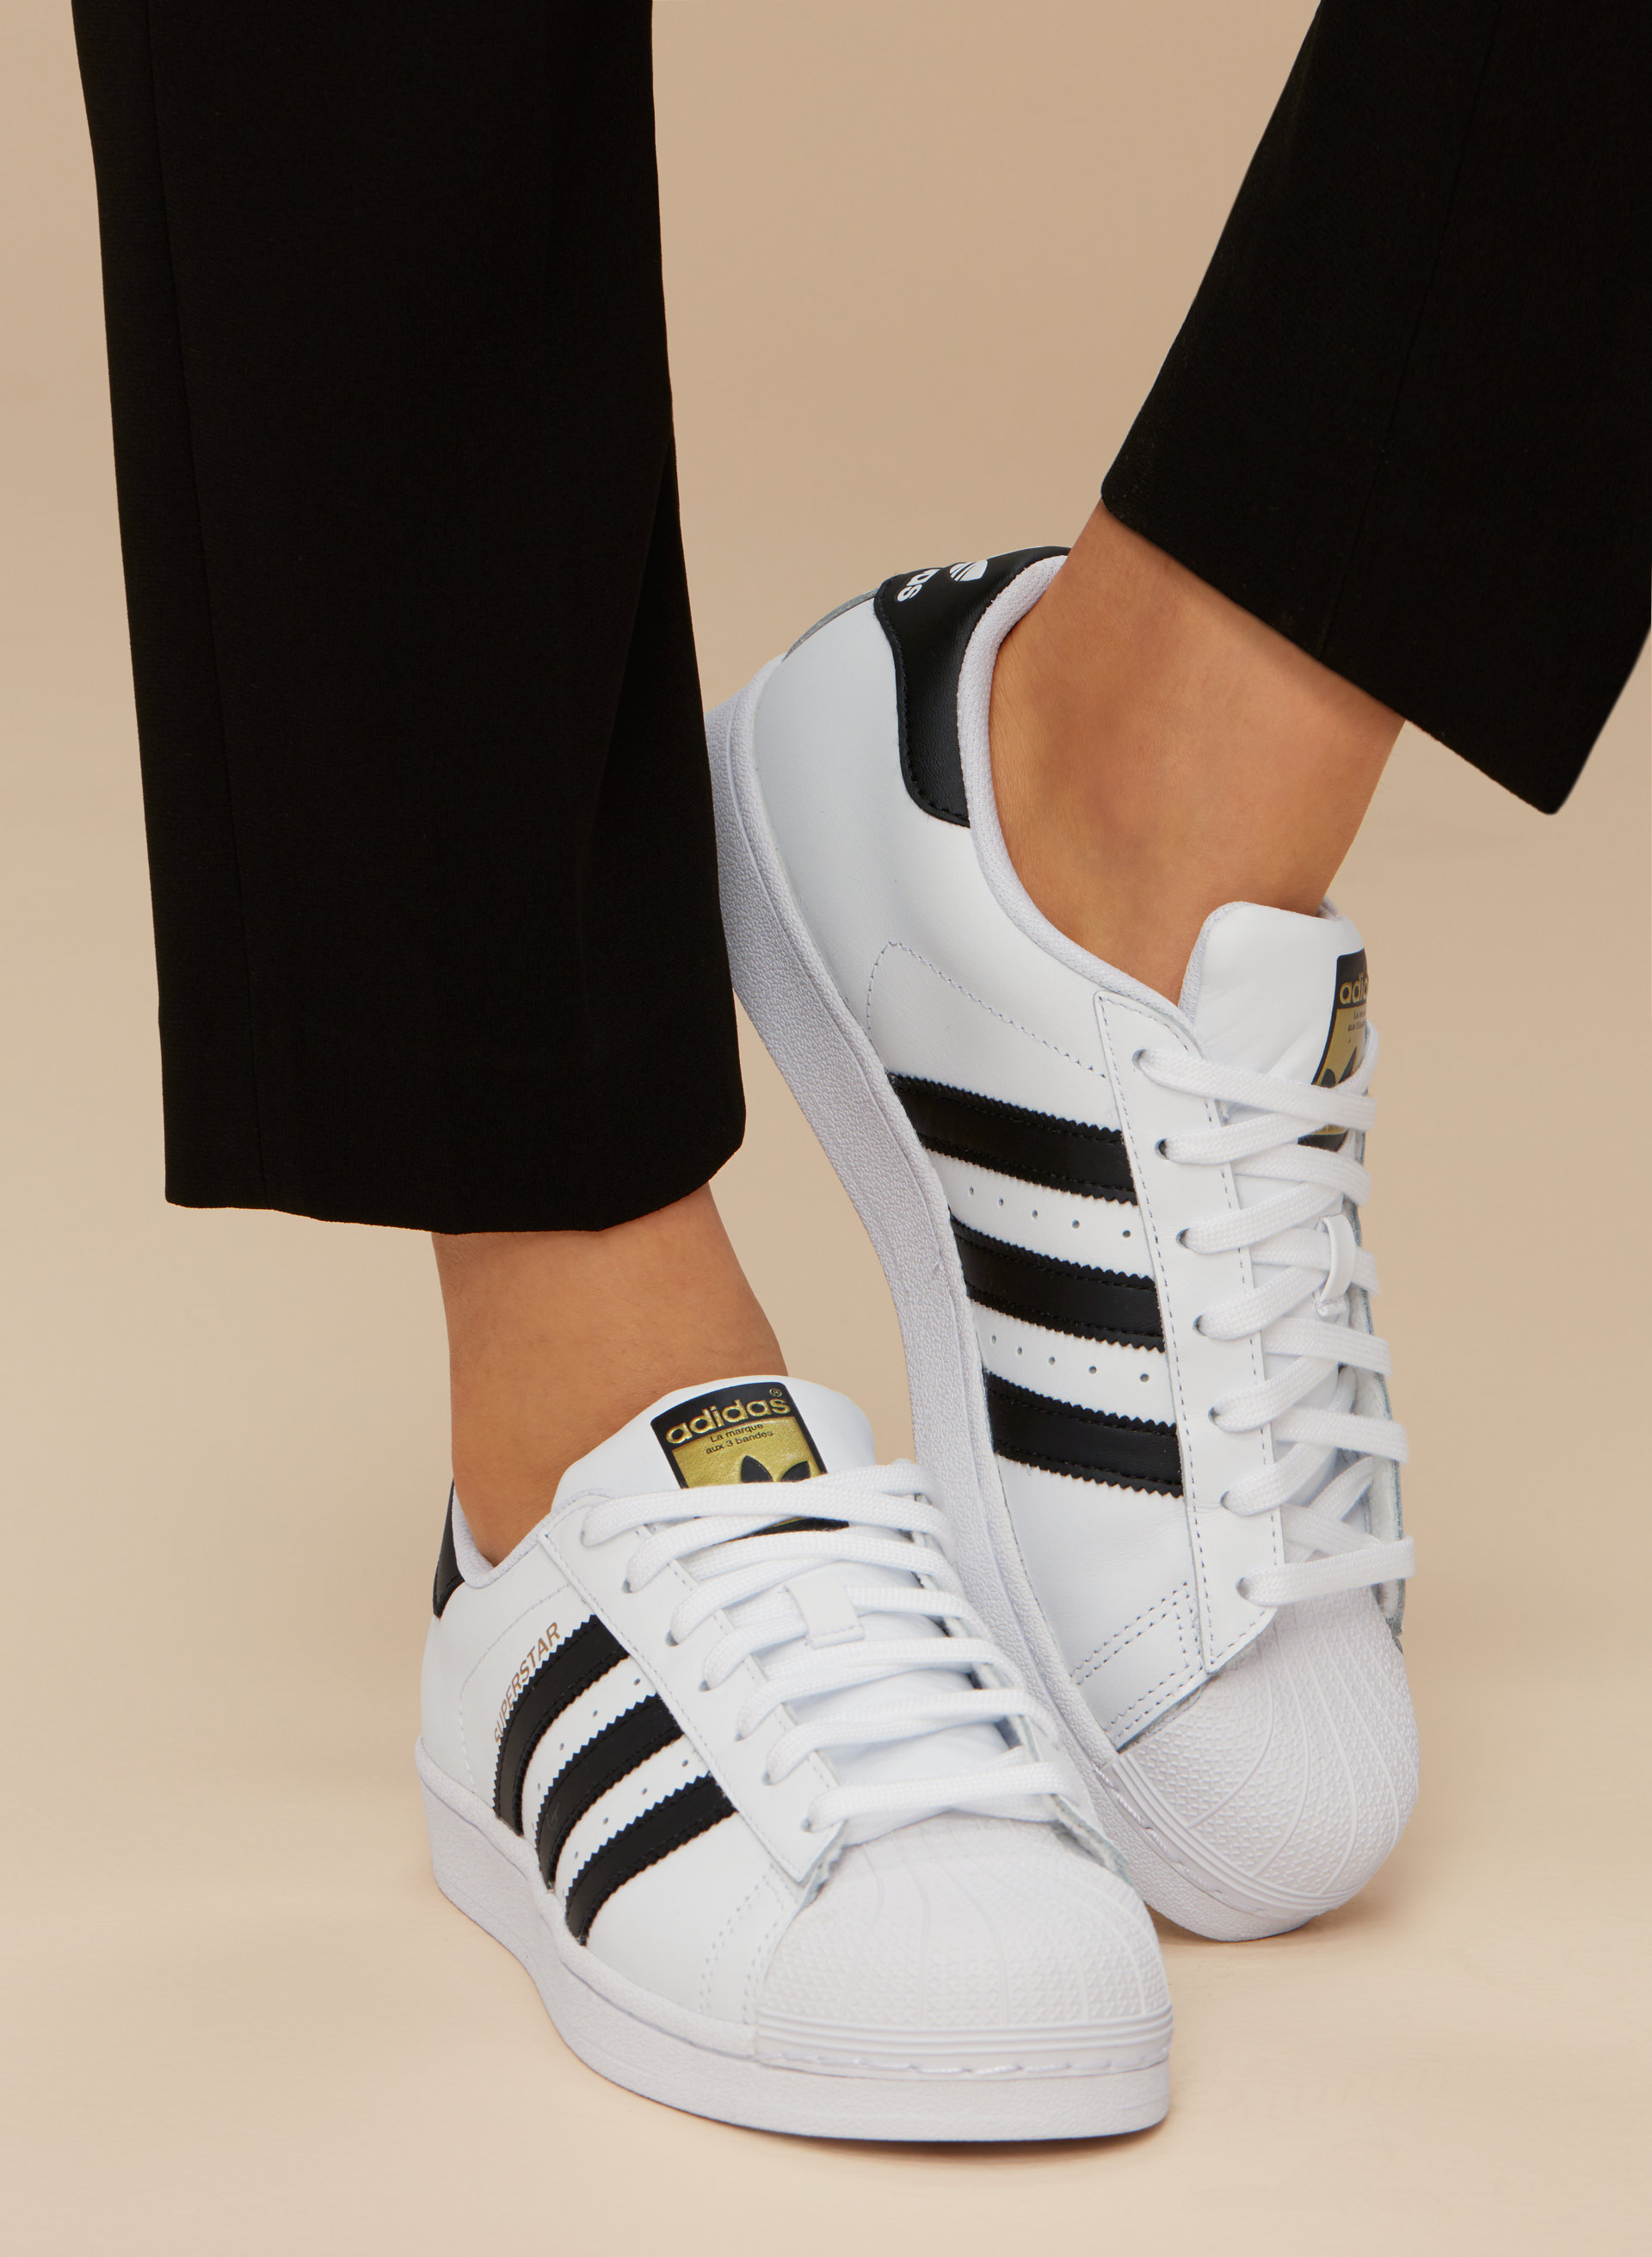 Adidas Originals Women's Superstar Up Shoes S79380